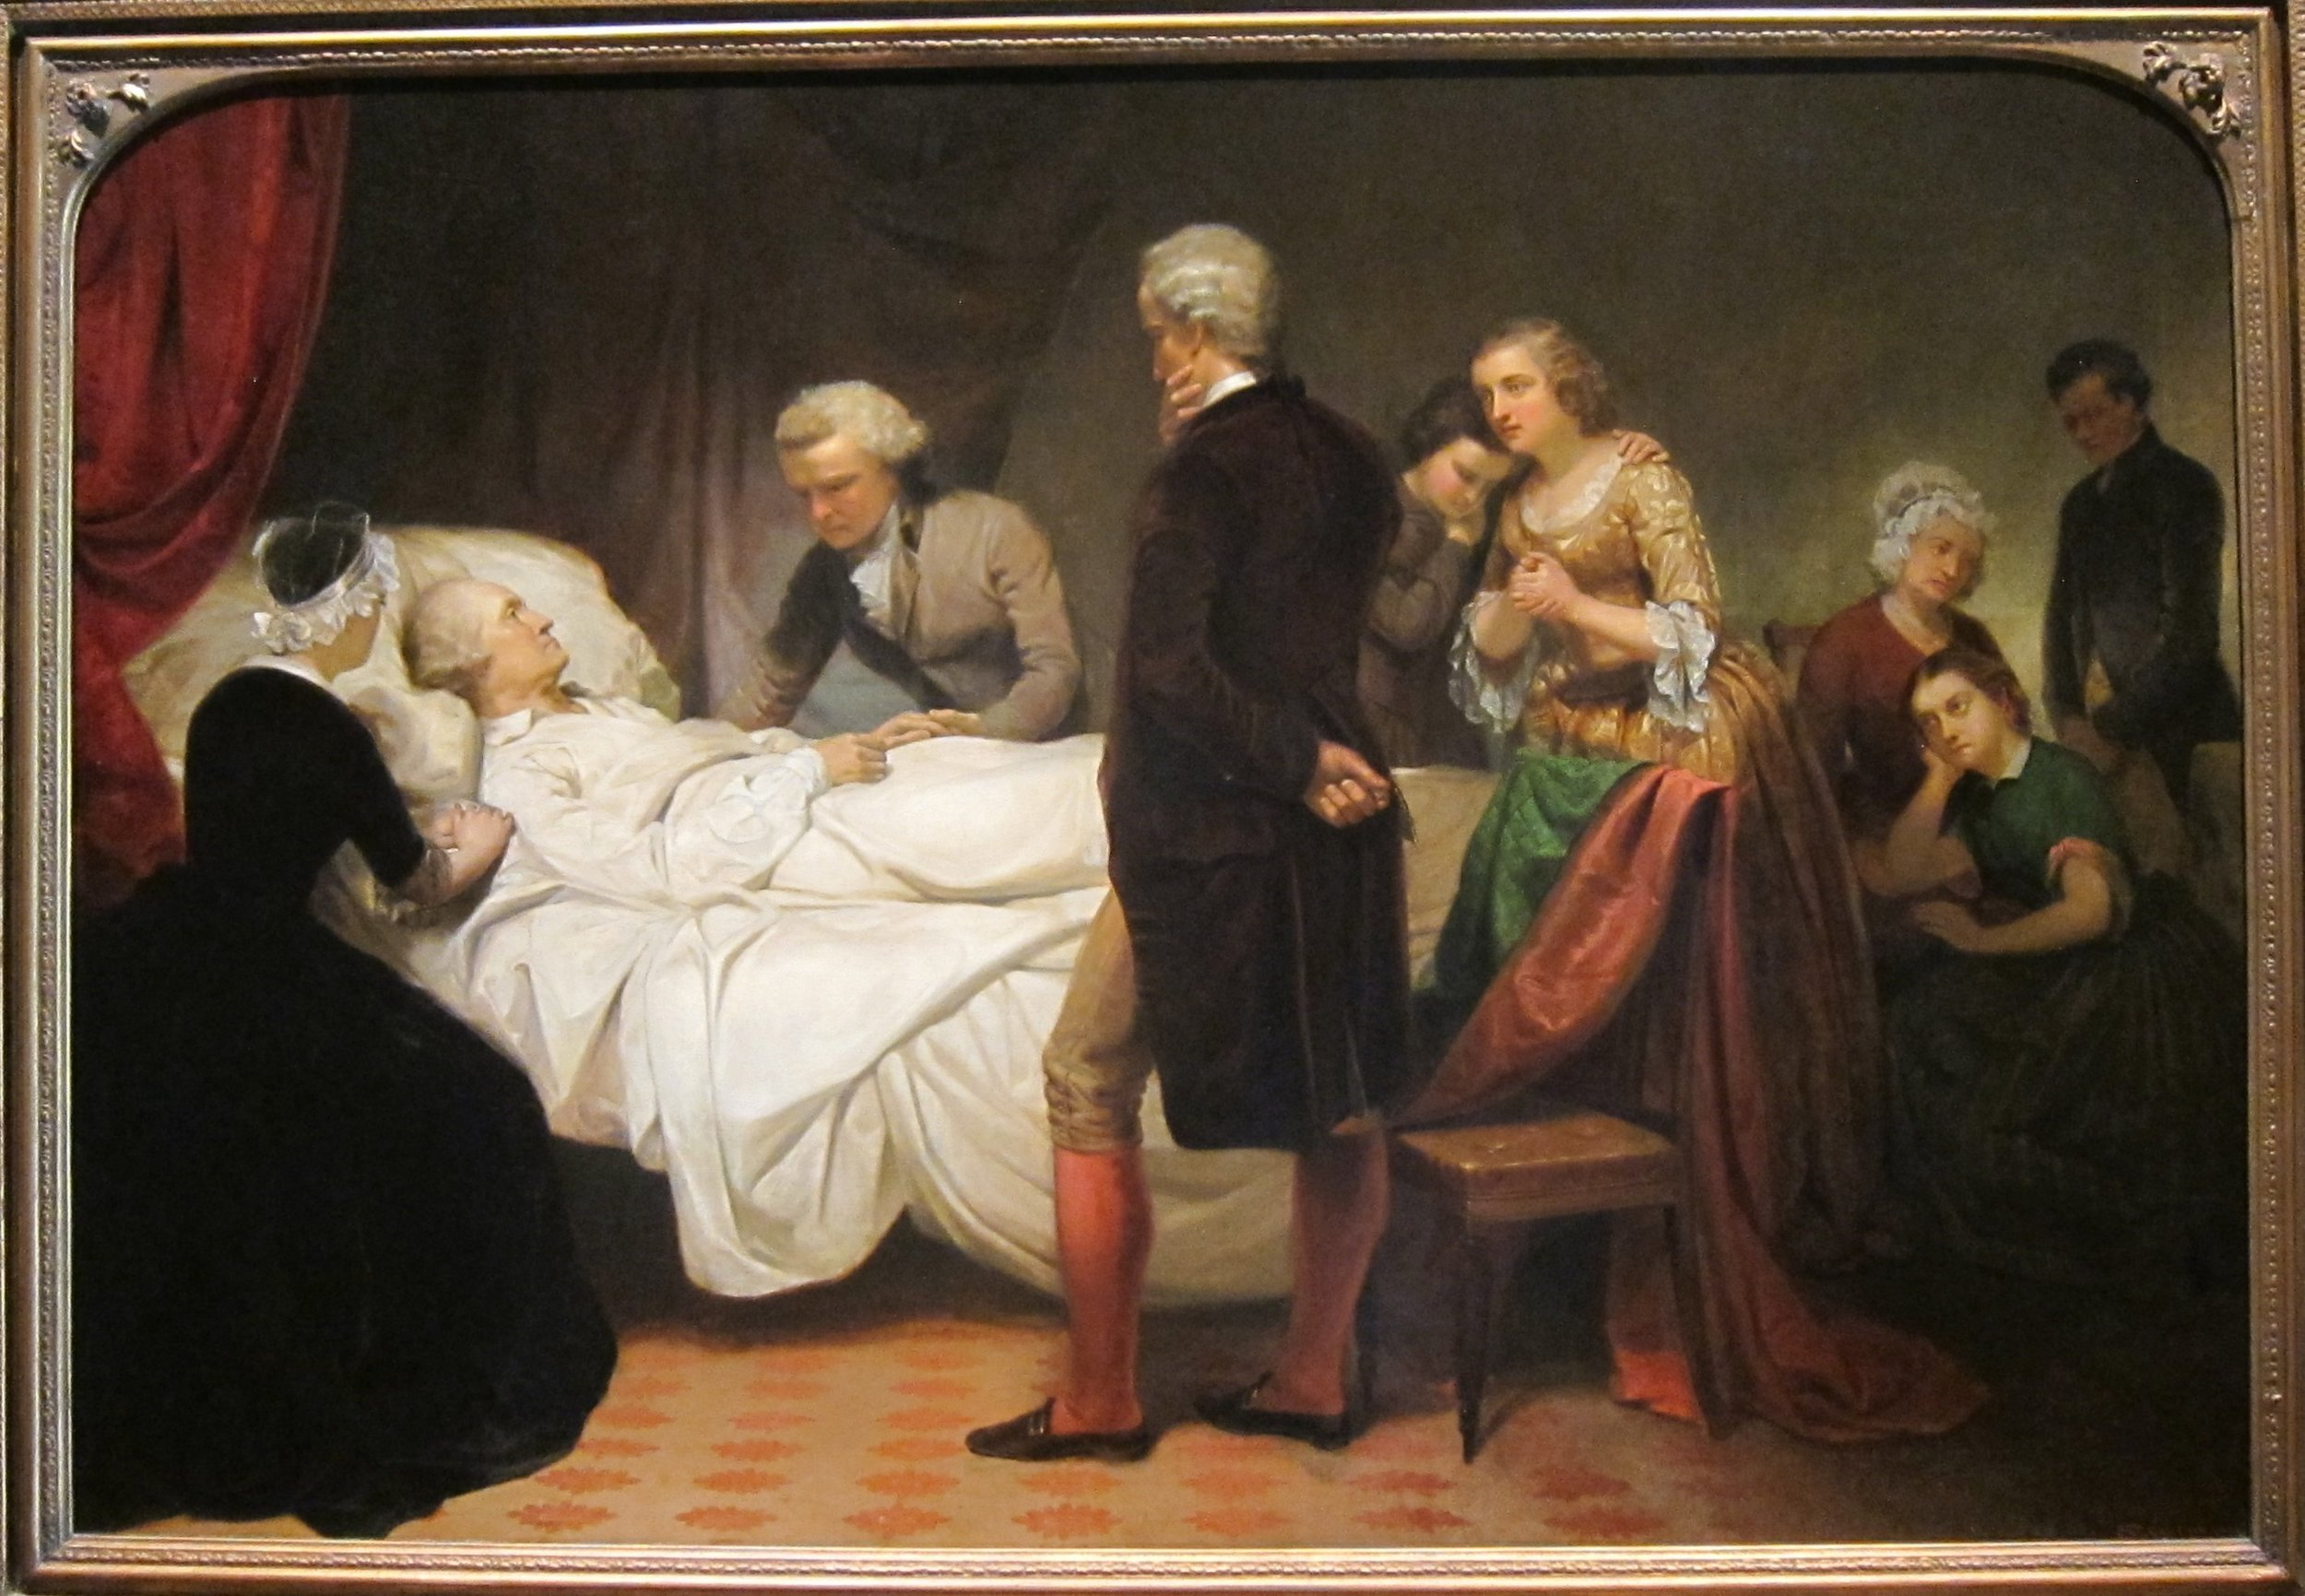 Washington on his Deathbed by Junius Brutus Stearns. 1851.